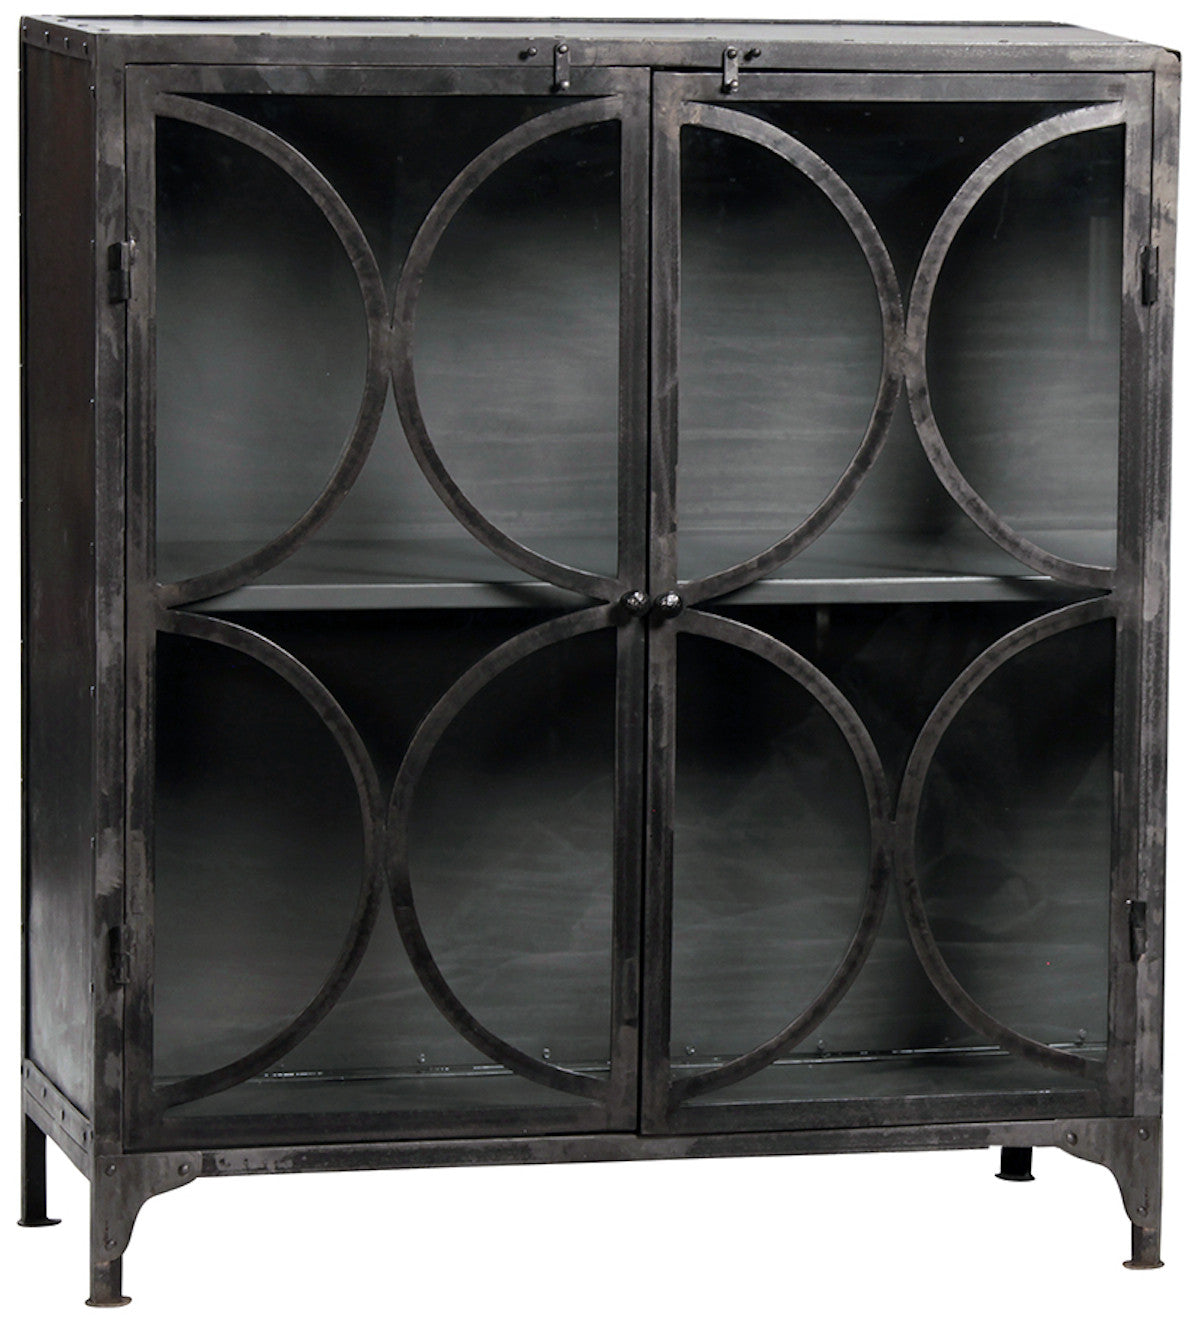 Low Glass Cabinet Delvin Metal Low Glass Bookcase Domal272 Mortise Tenon